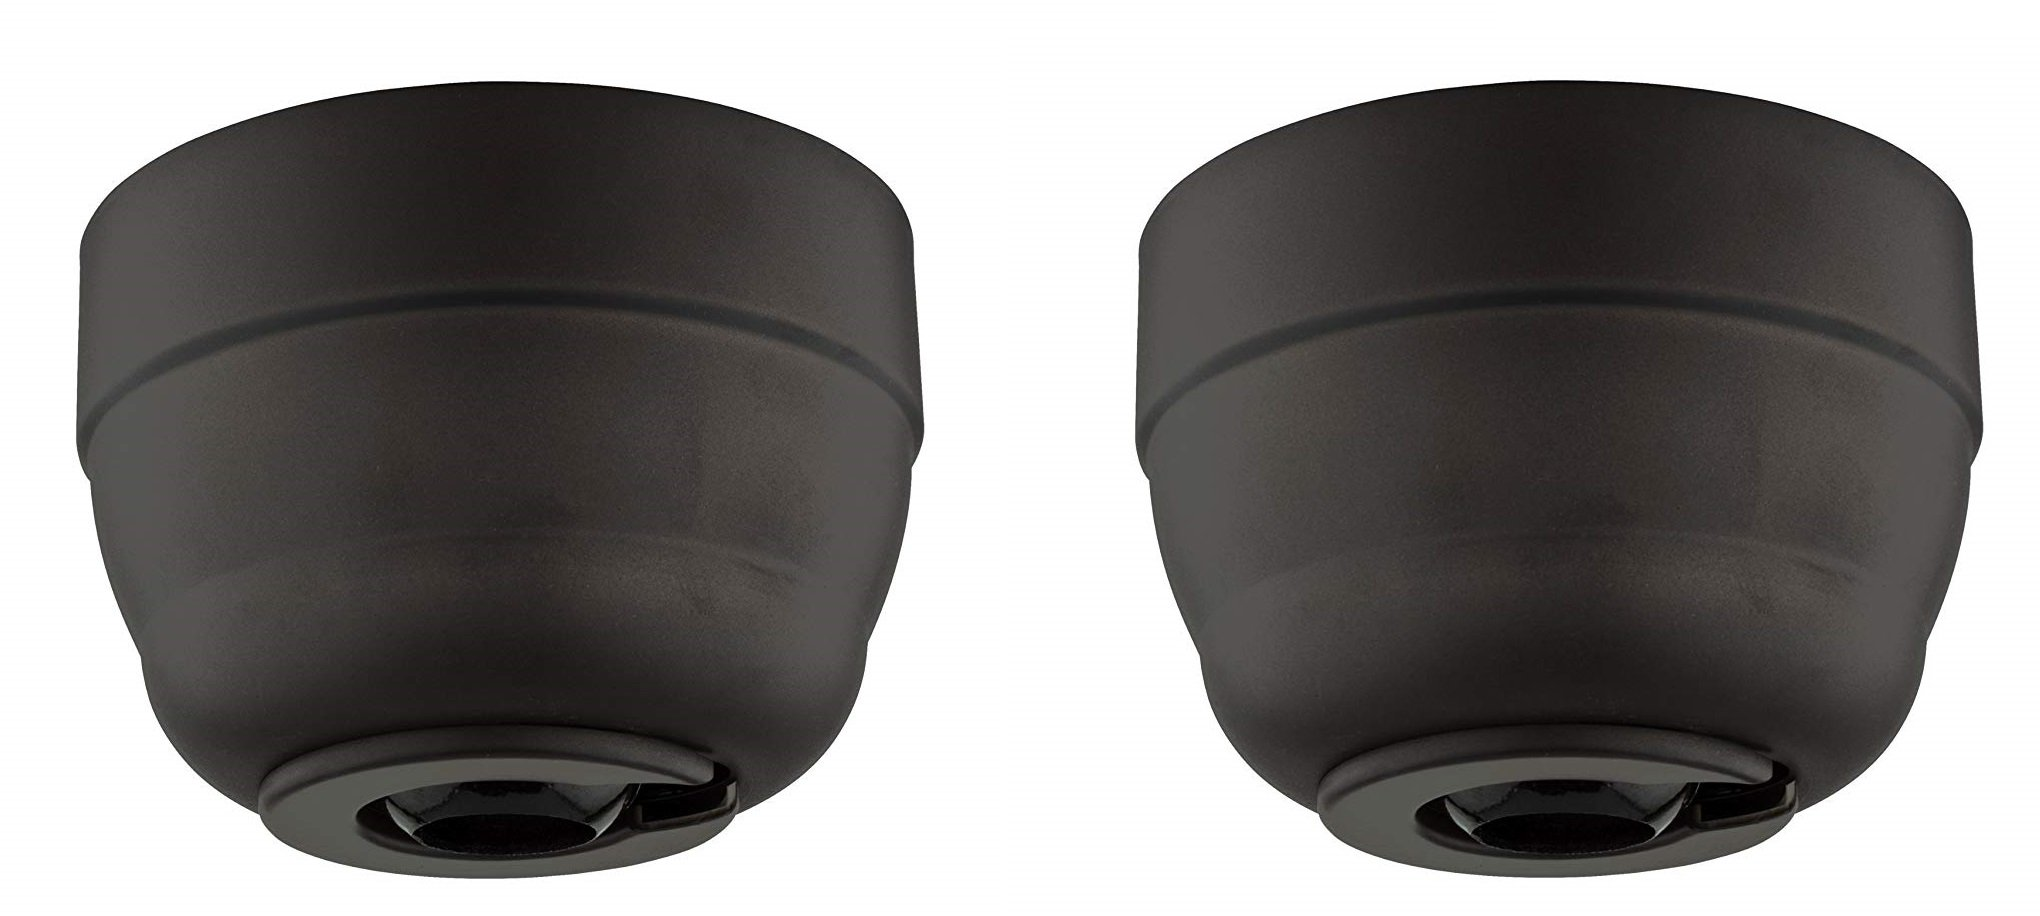 Westinghouse 45-Degree Canopy Kit, Oil Rubbed Bronze (2 Pack)